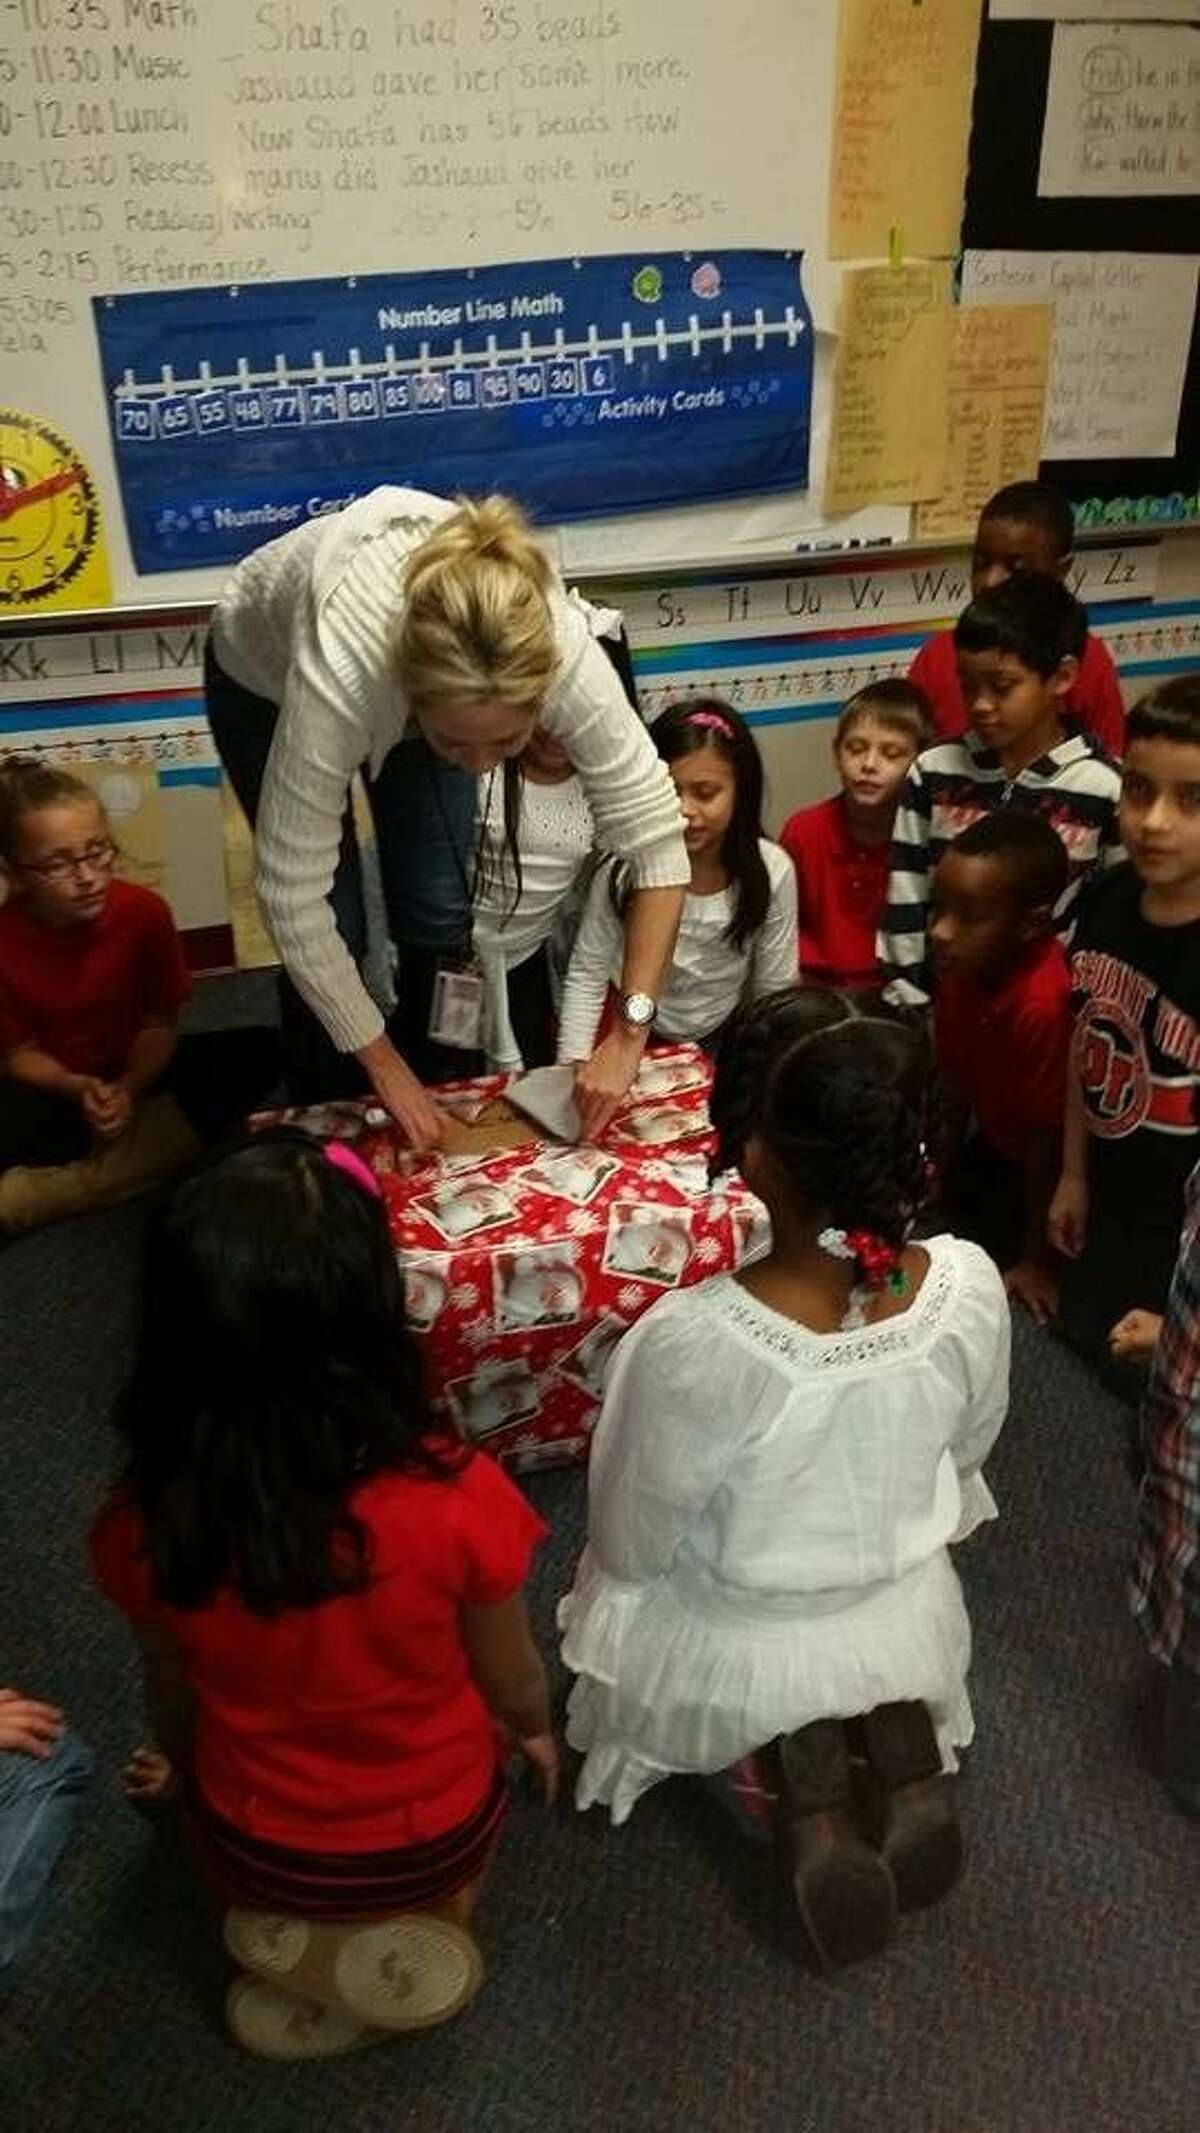 River Pines Elementary students and teachers were surprised on Dec. 16, 2014 with donated sweatshirts with the school's logo, a tree frog, screenprinted across the front.